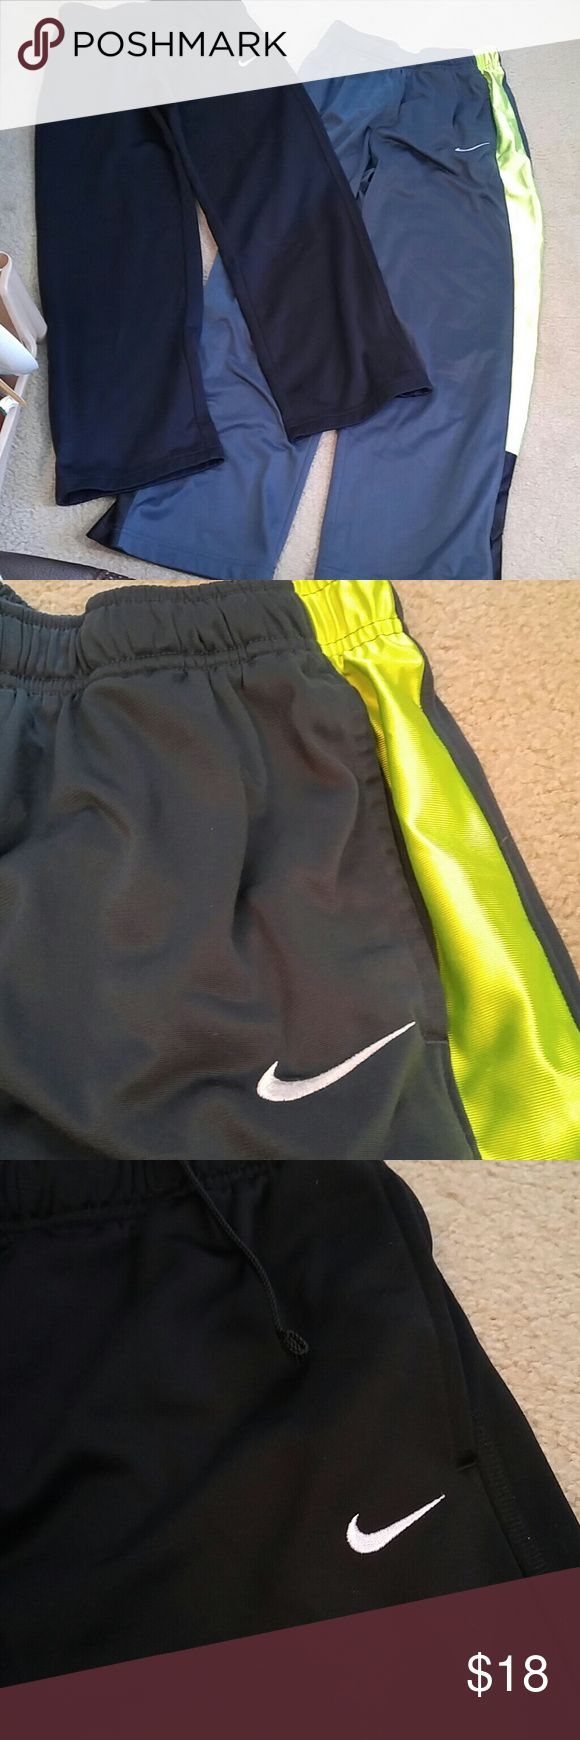 Bundle 2 Pair Boys Nike Athletic Pants L (12-14) Bundle 2 Pair Boys Nike Athletic Pants. Both size L (12-14). One pair is black with white swoosh.  These are lined with thin fleece. The other pair are Gray with neon yellow. Unlined. Both in Excellent shape. No wear to knees. No rips or tears. Nike Bottoms Casual